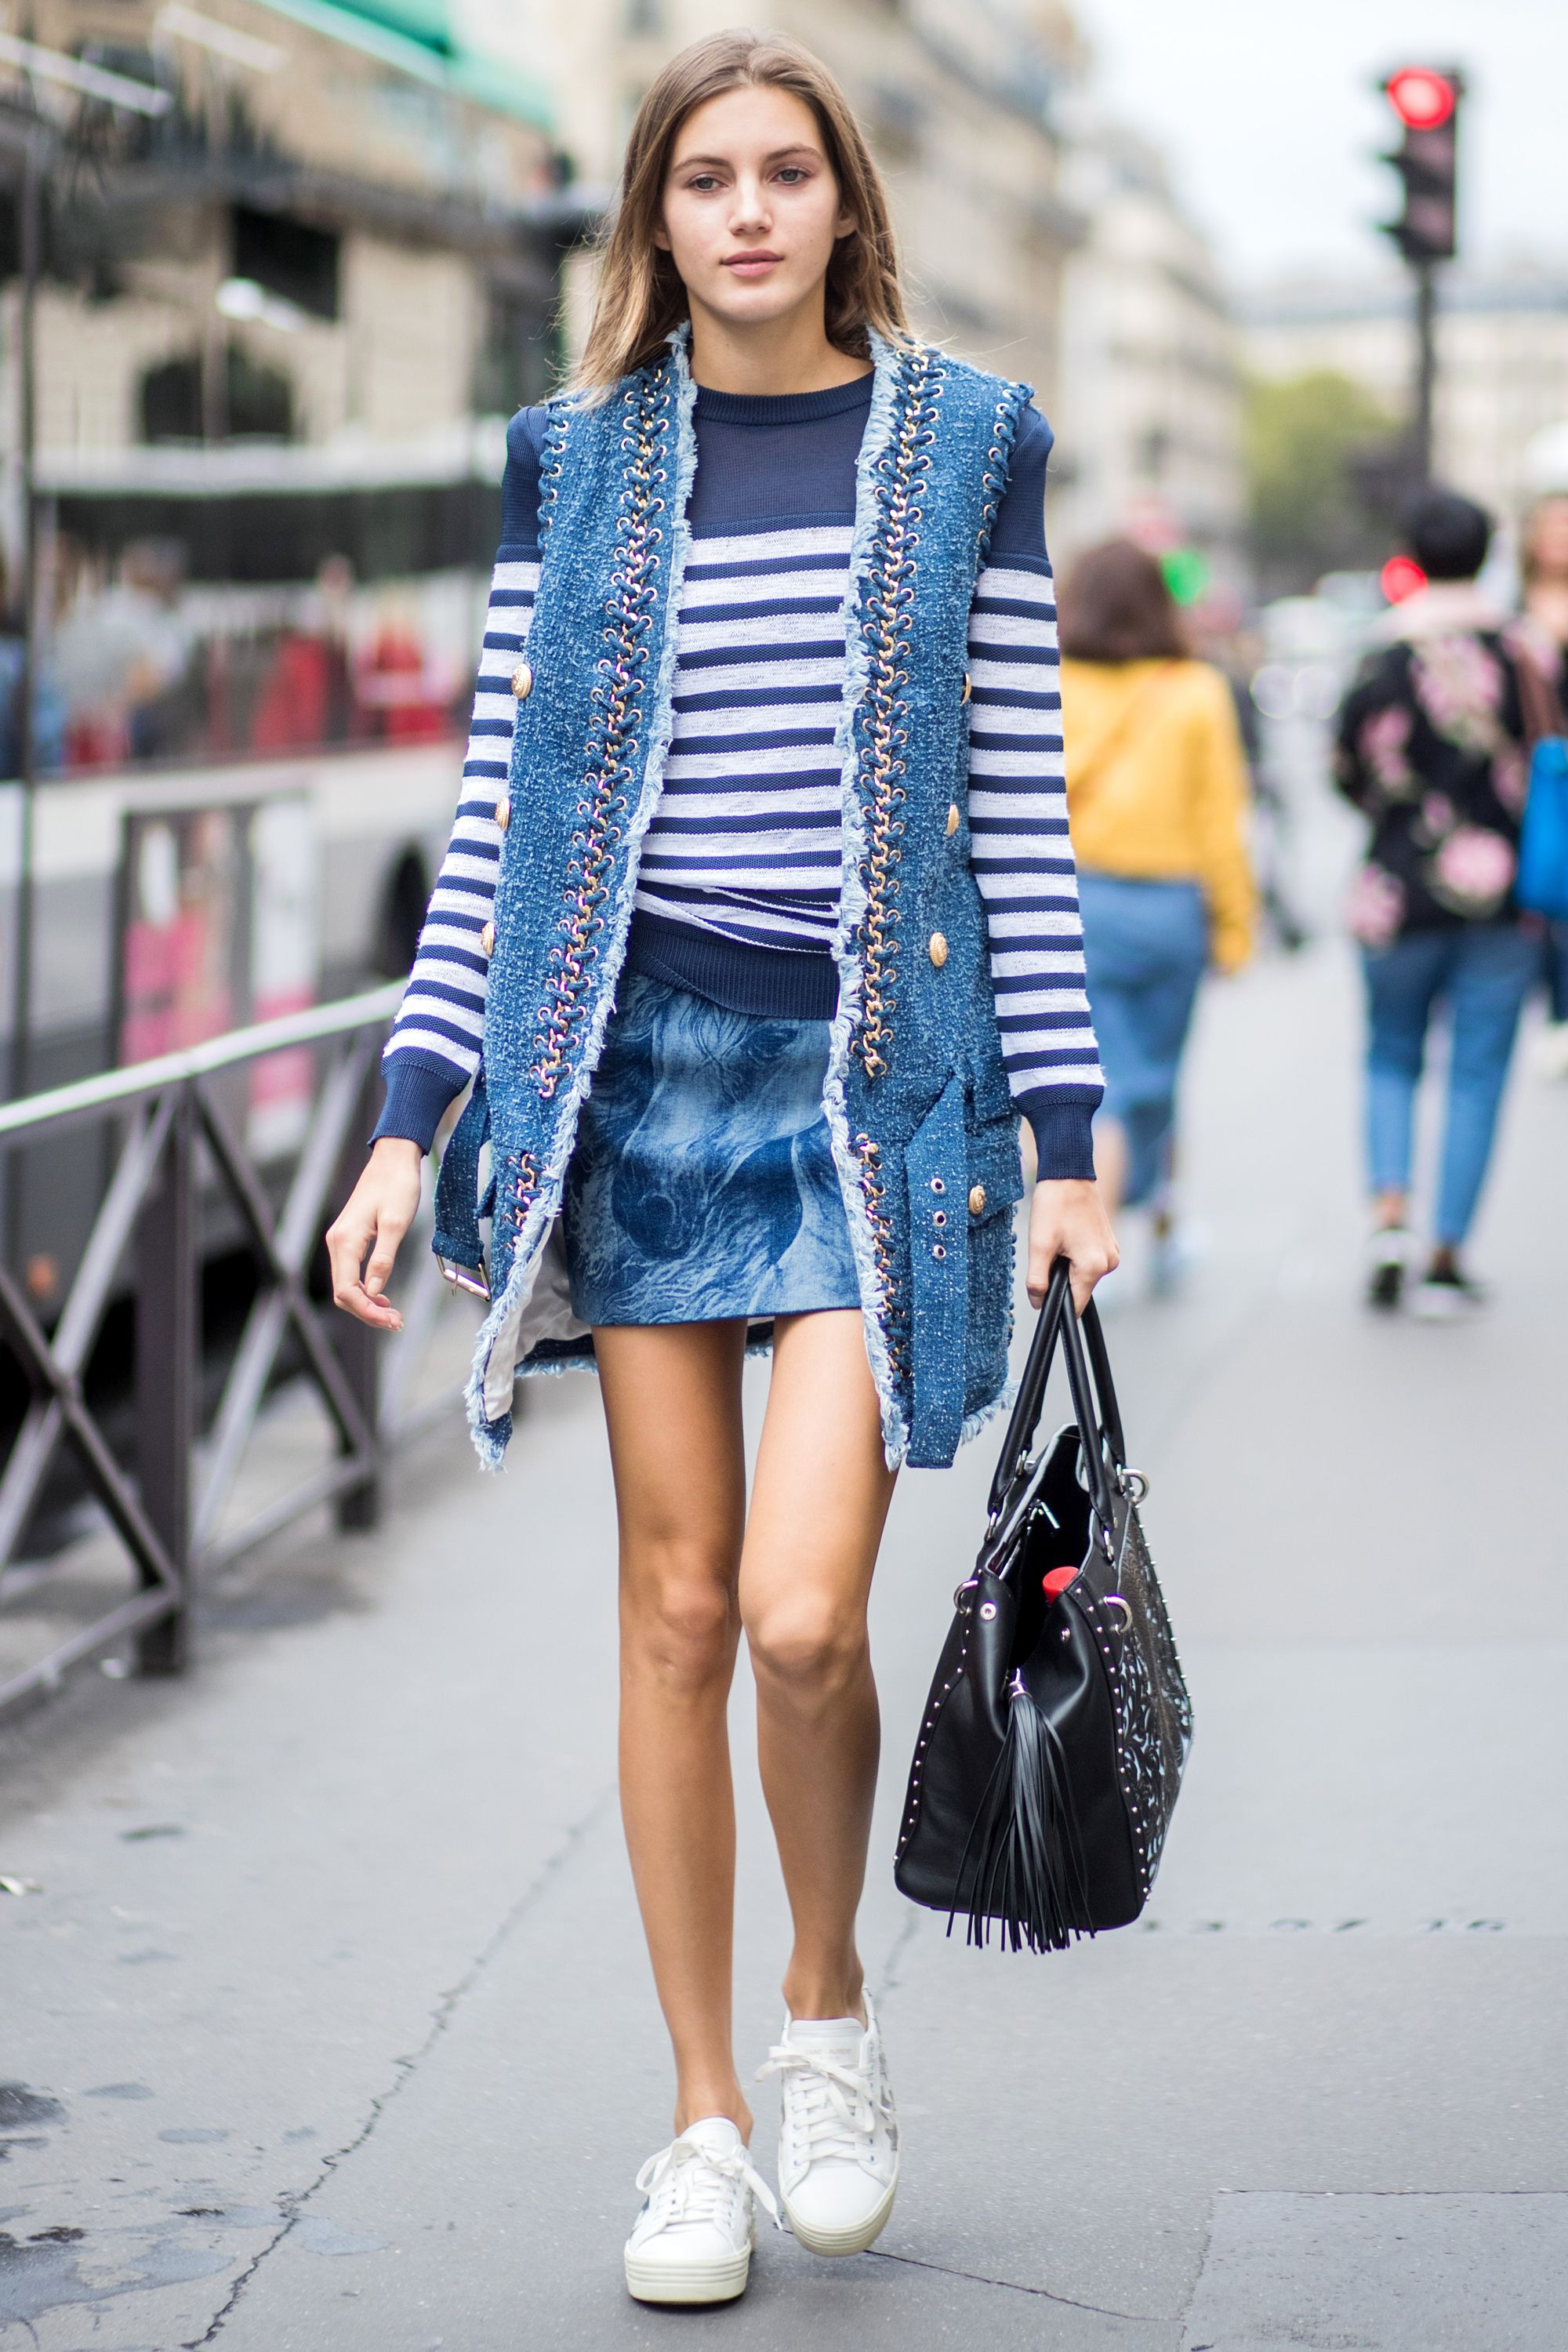 f31d52fe1 The 50 Best Fashion Tips of All Time - Stripe It Up from InStyle.com